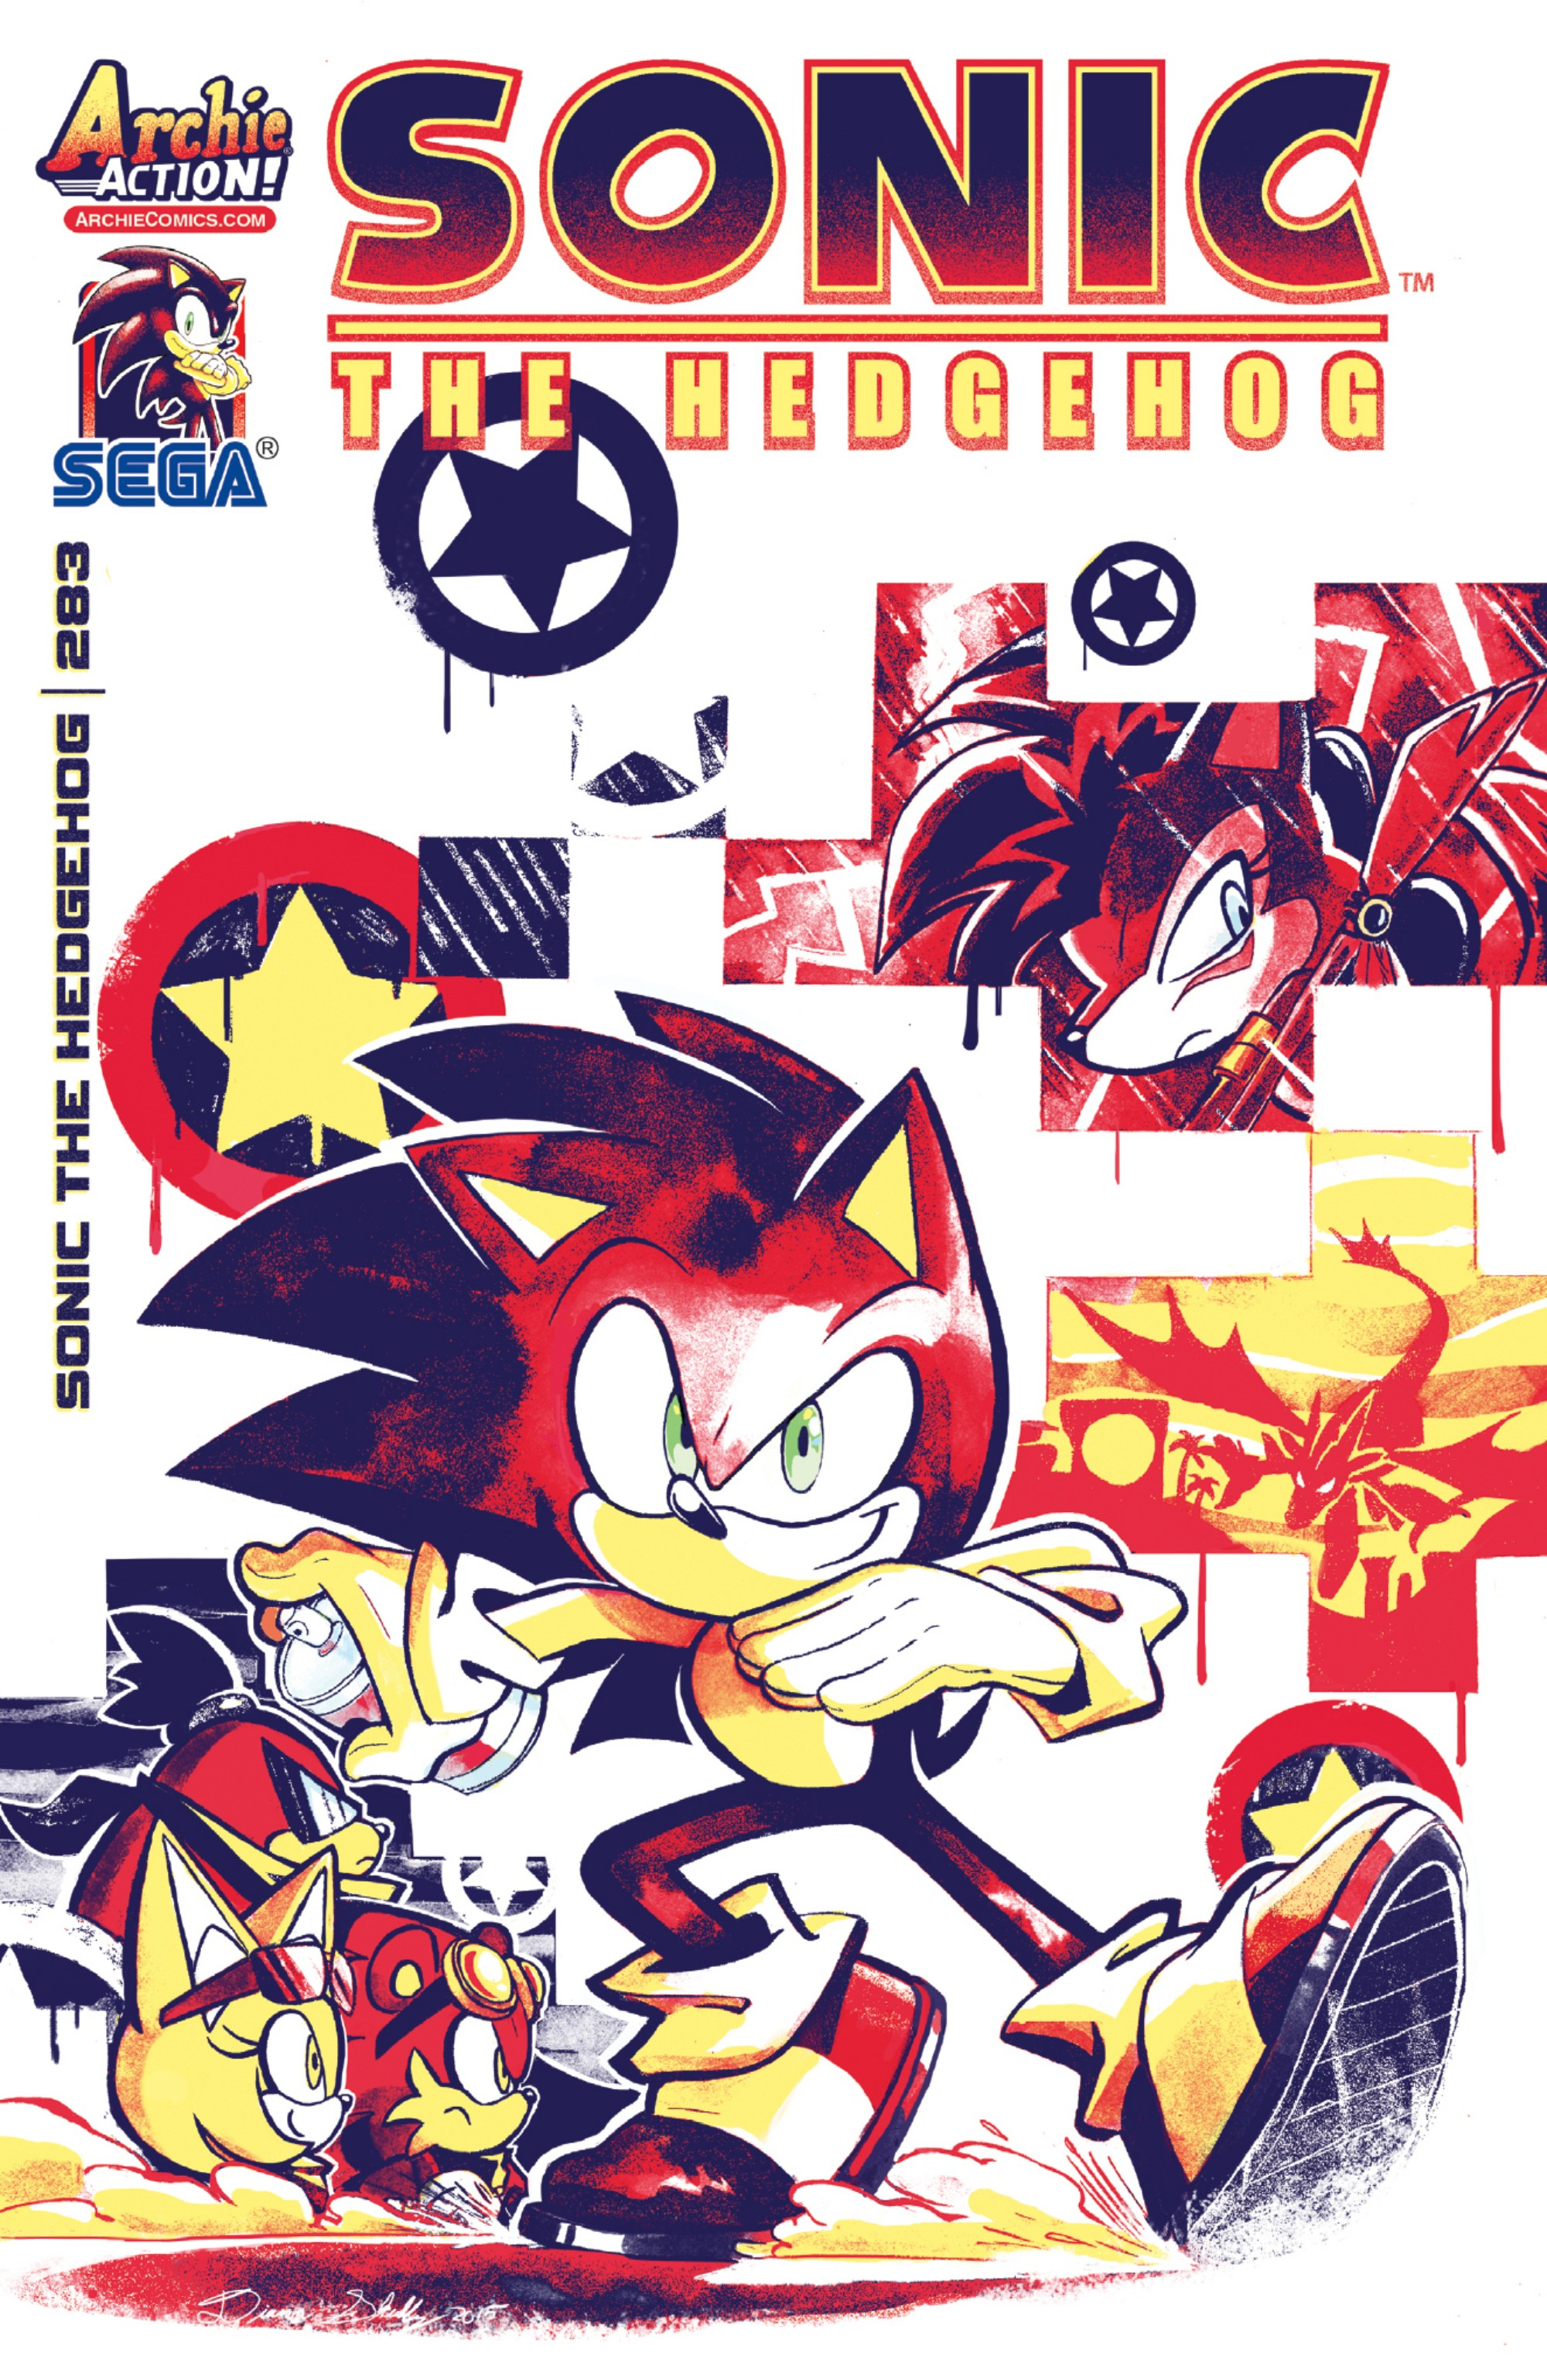 Archie Sonic the Hedgehog Issue 283